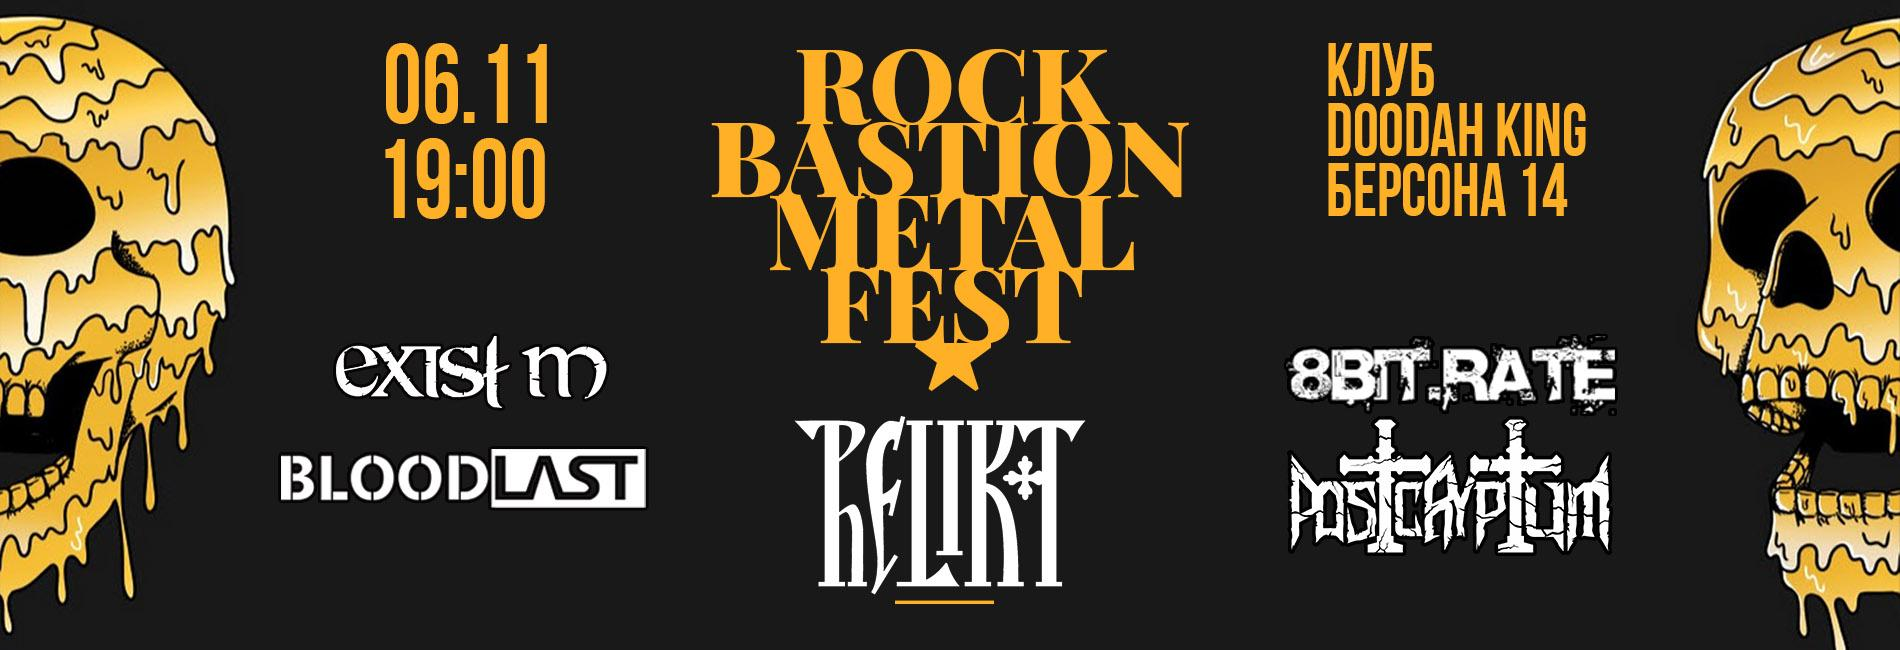 Rock Bastion Metal Fest 6 ноября 2019 Бар «Doodah King» Минск